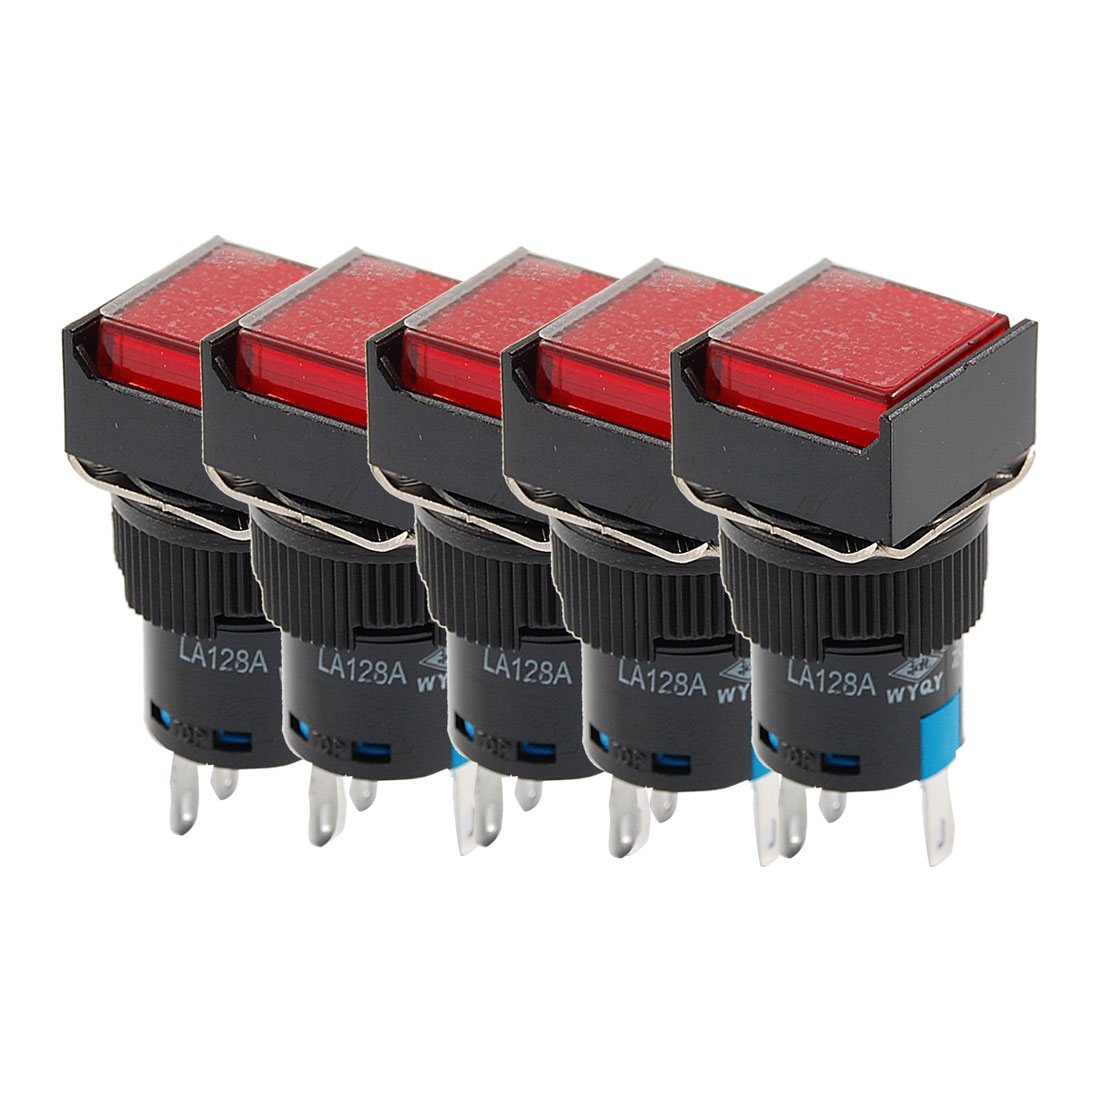 5 x DC 24V Red Light Squared Cap Latching 1NO 1NC Panel Push Button Switch